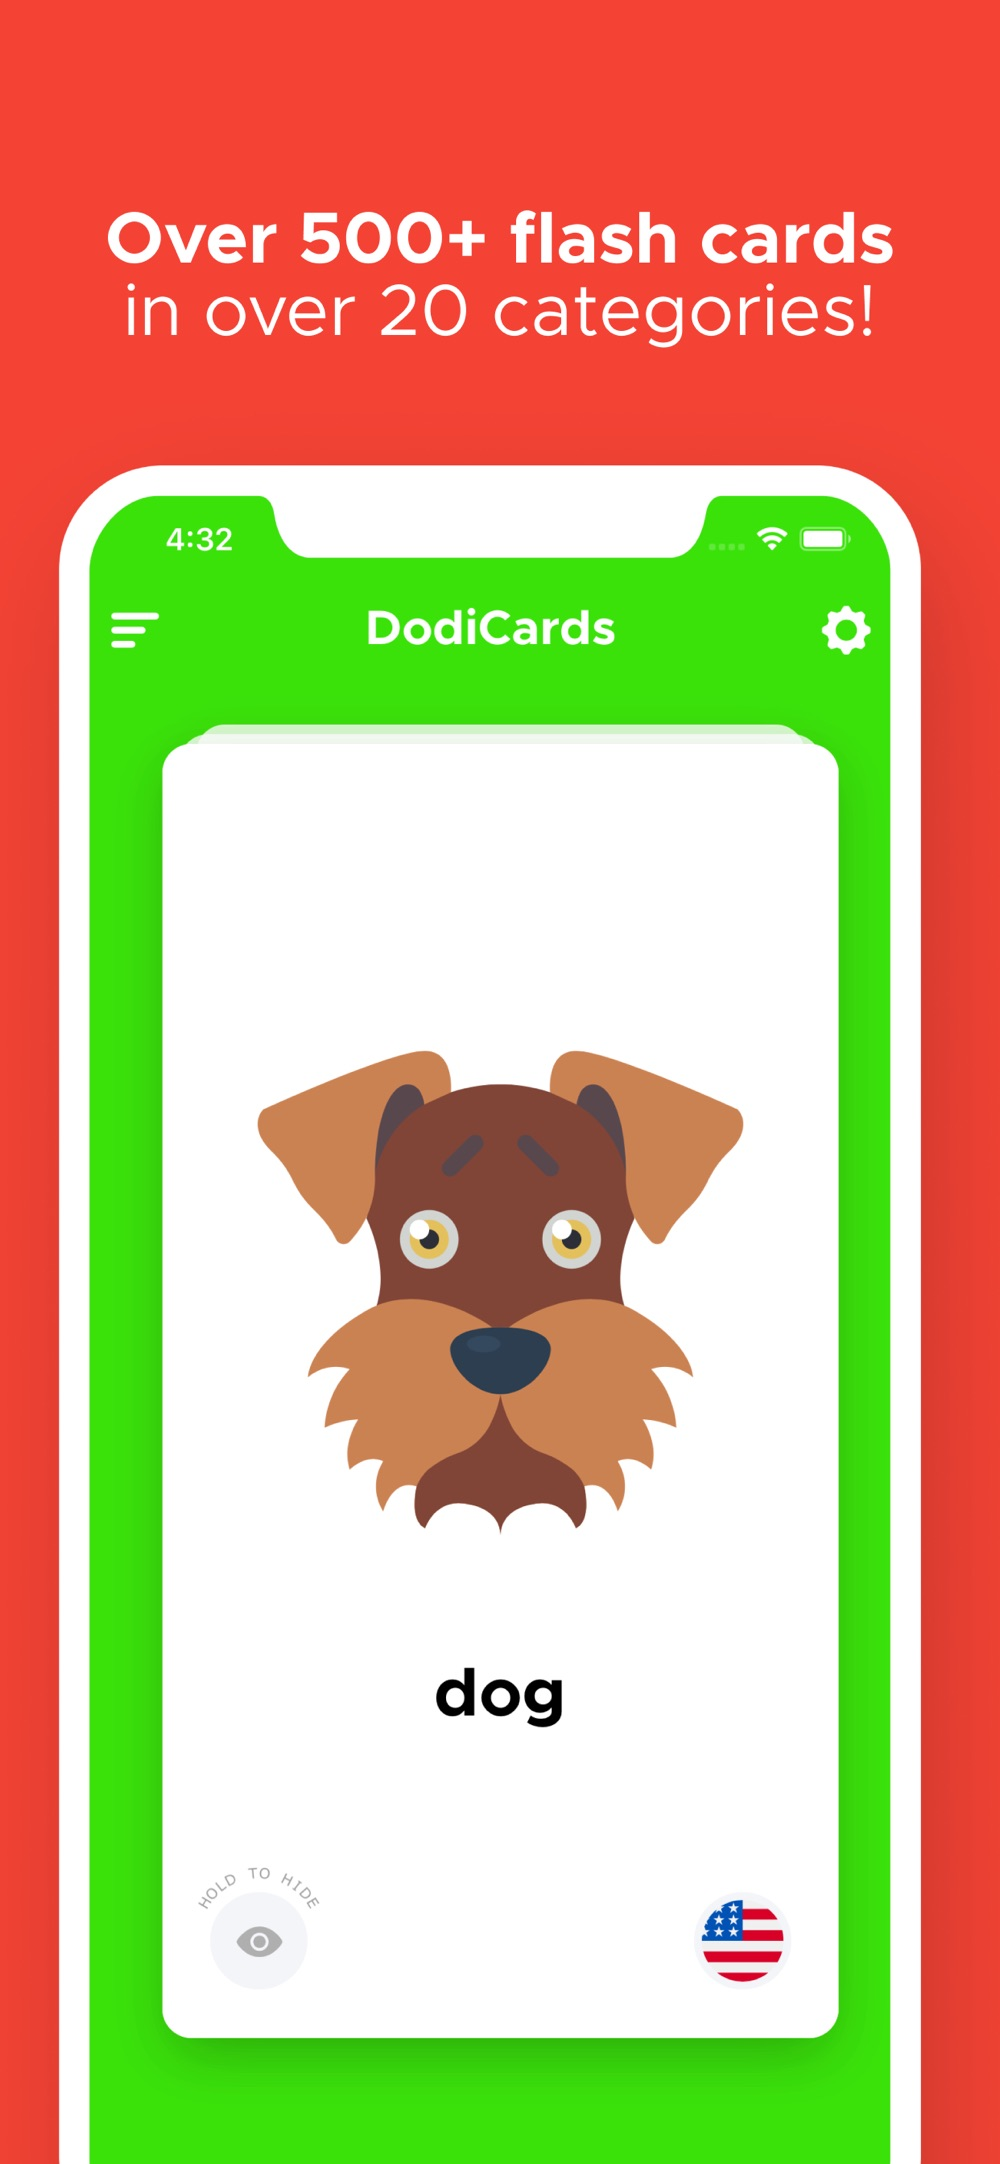 DodiCards Flash Cards for Kids Cheat Codes